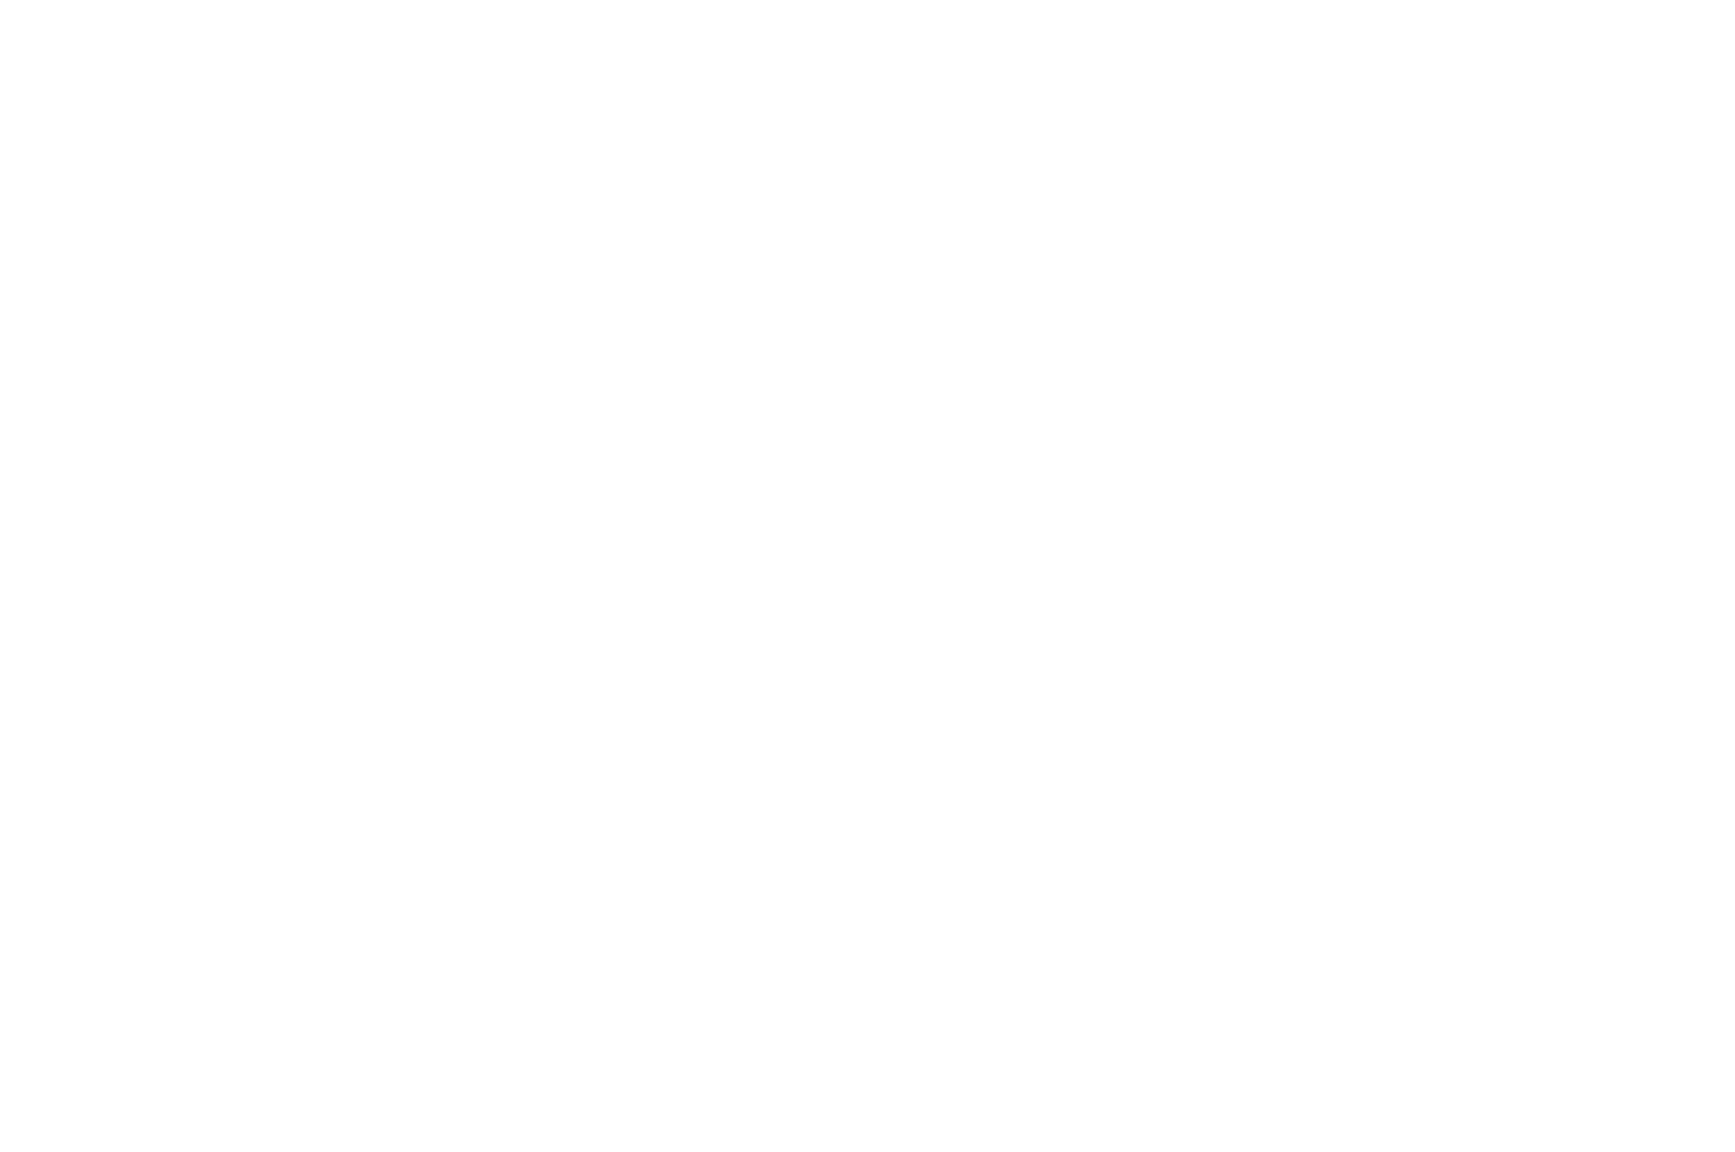 WINNER - 59th Southern California Journalism Awards - 2017